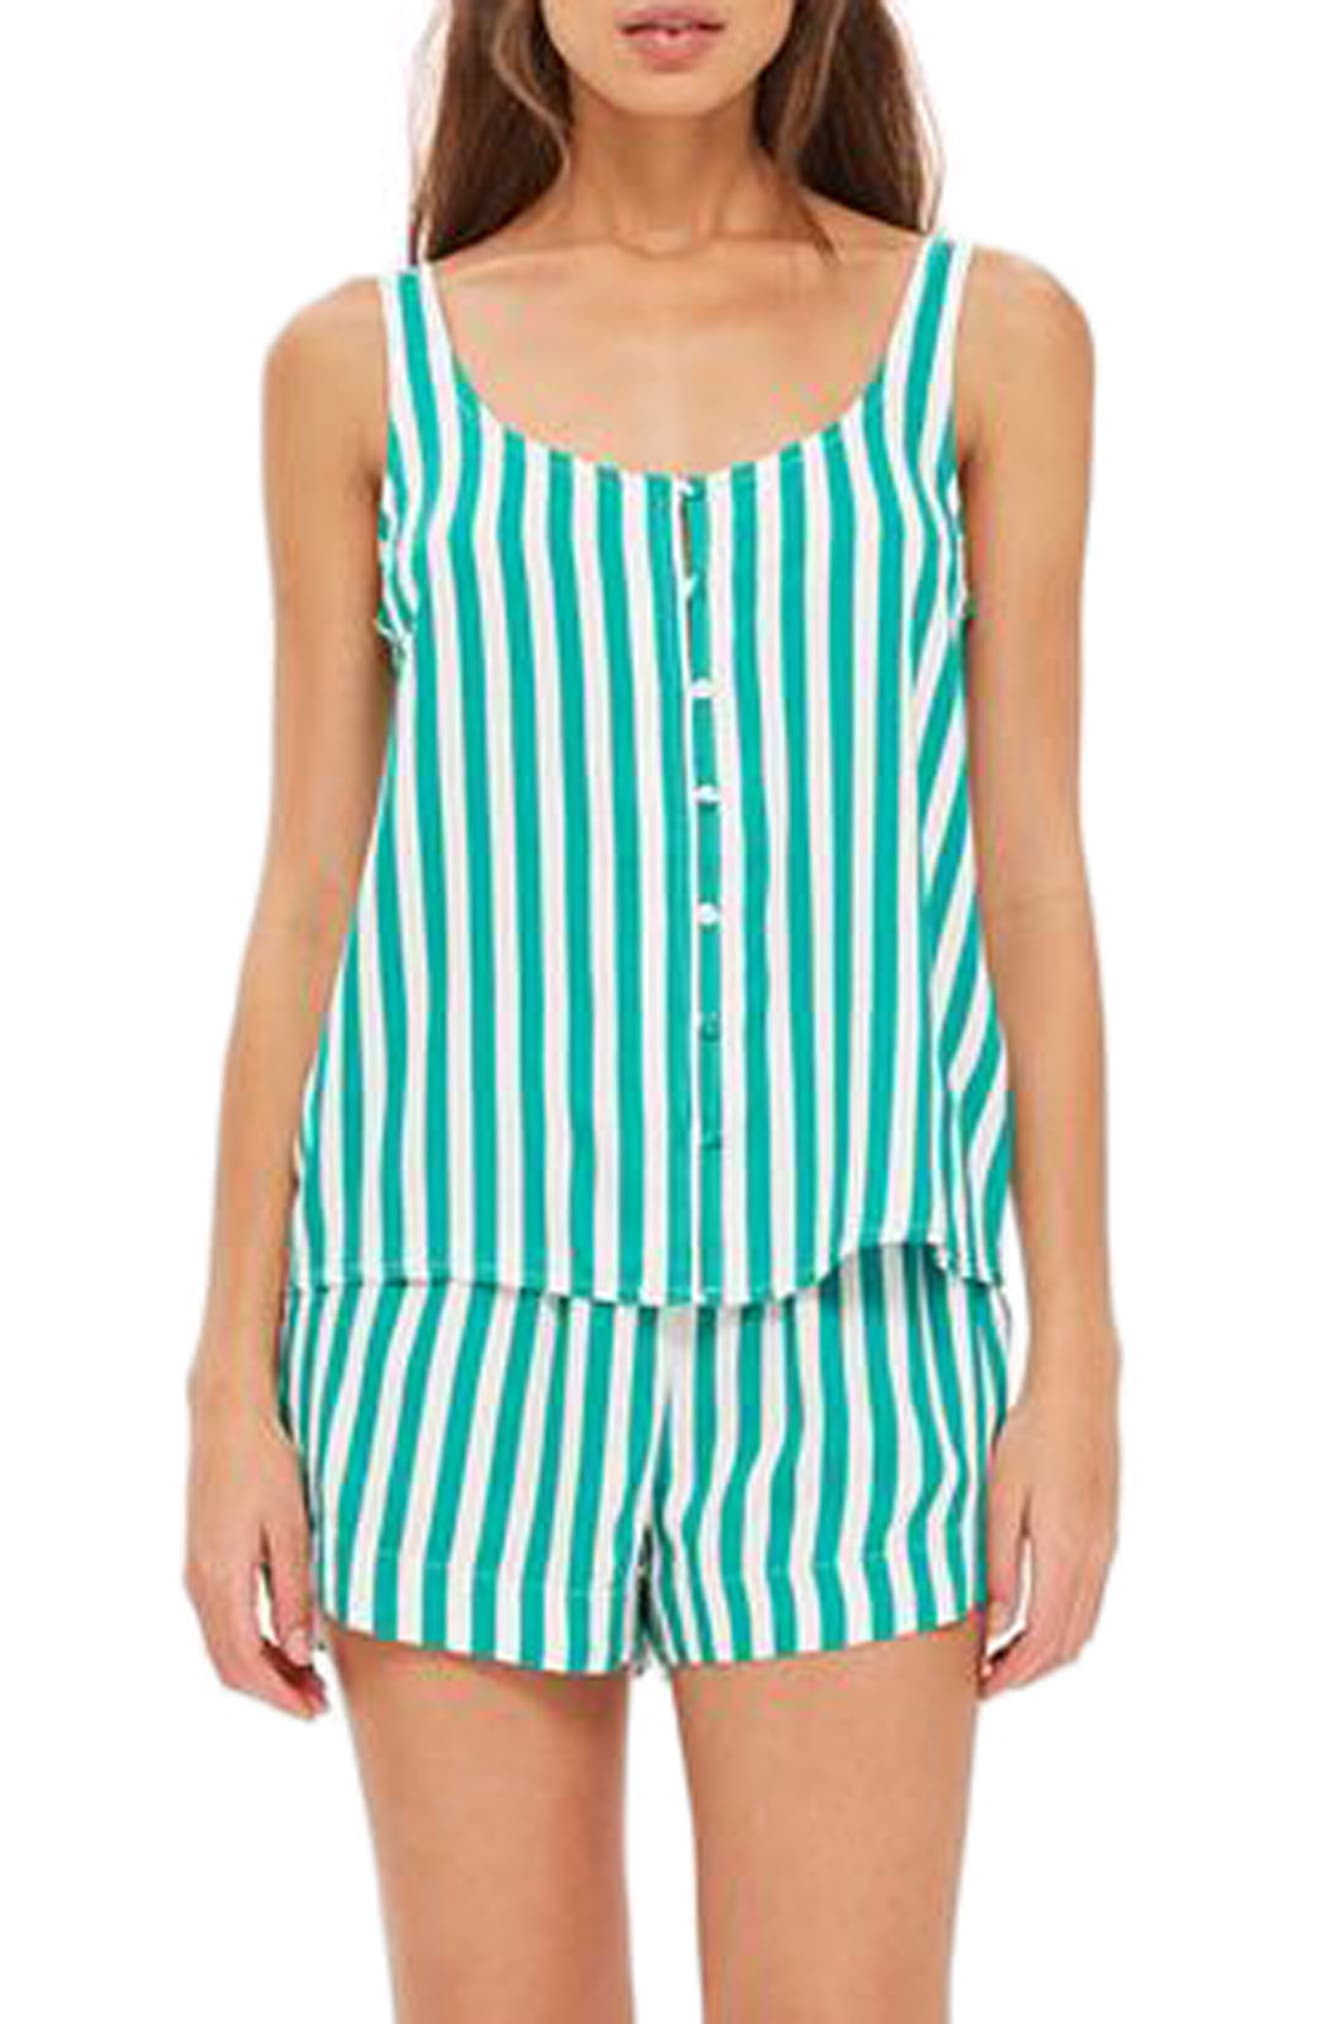 Humbug Stripe Short Pajamas,                             Main thumbnail 1, color,                             300